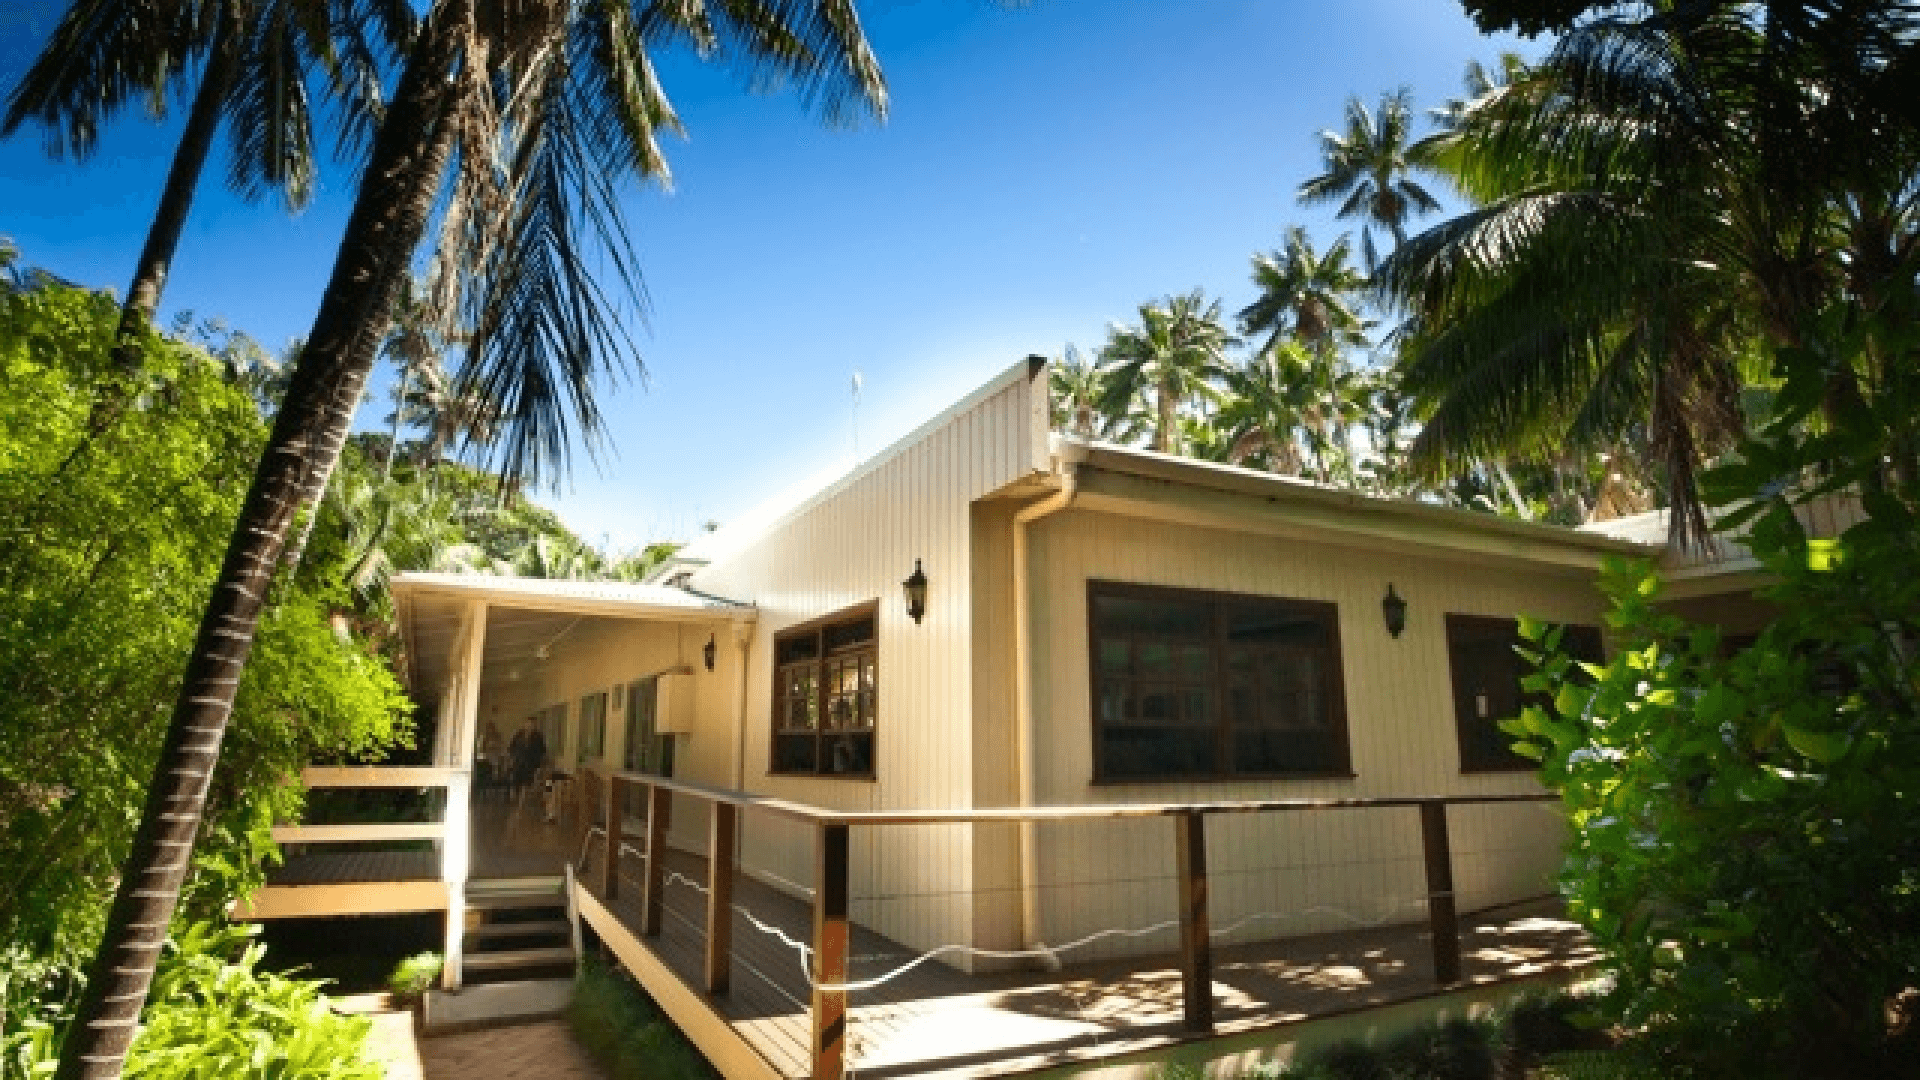 Beachcomber Lodge